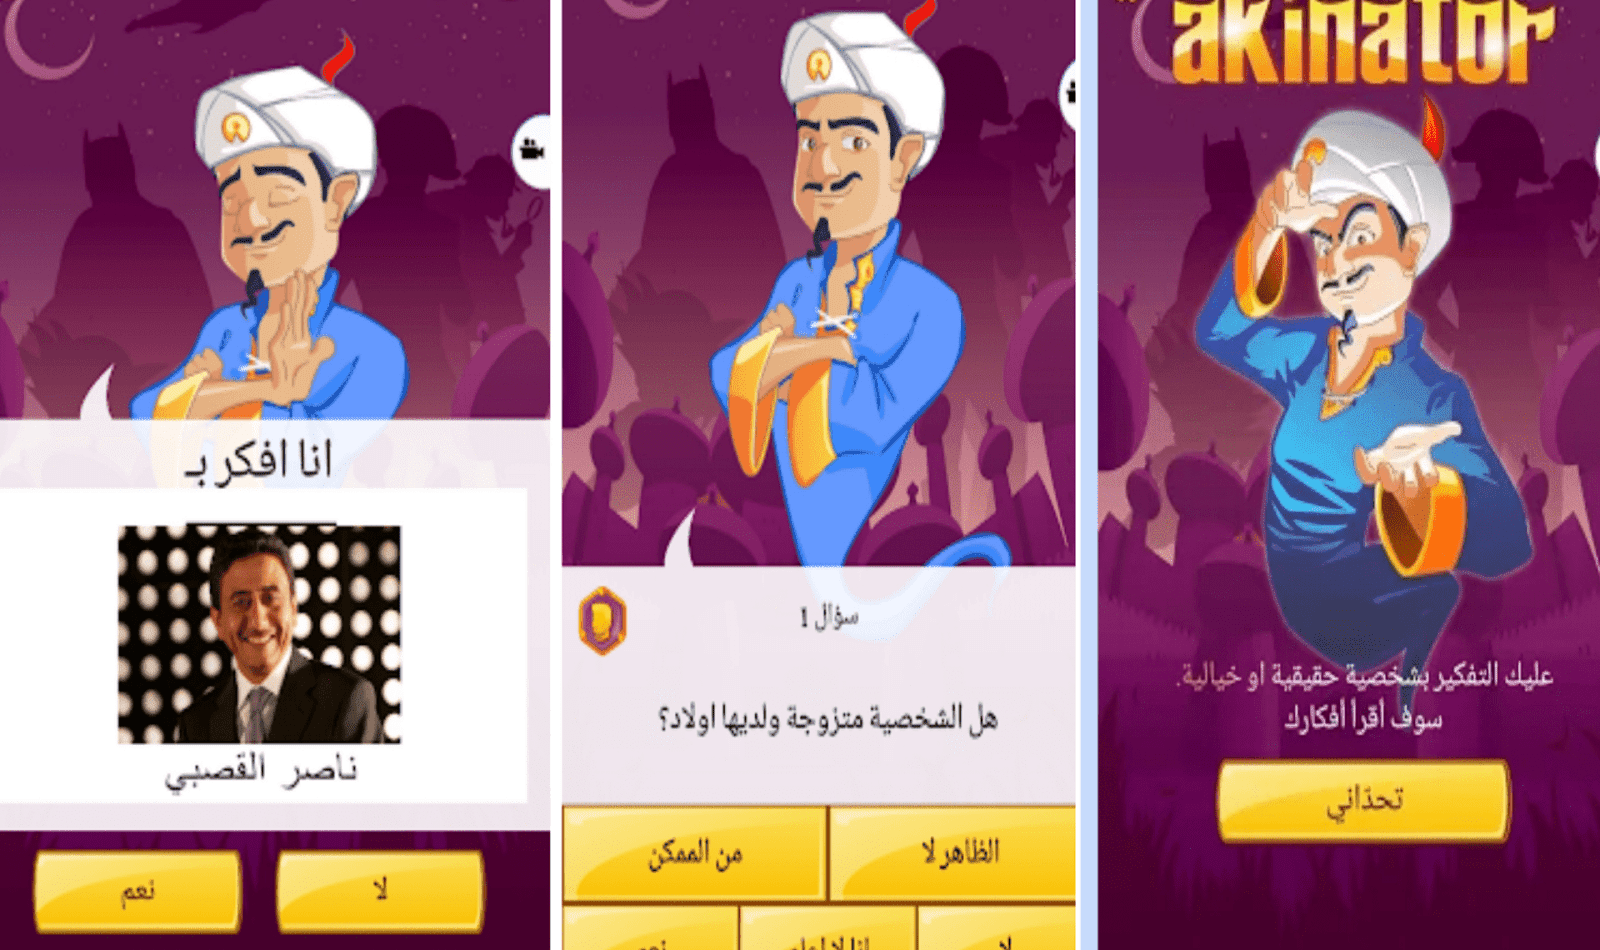 Download the Blue Genie app in Arabic and the Akinator Challenge